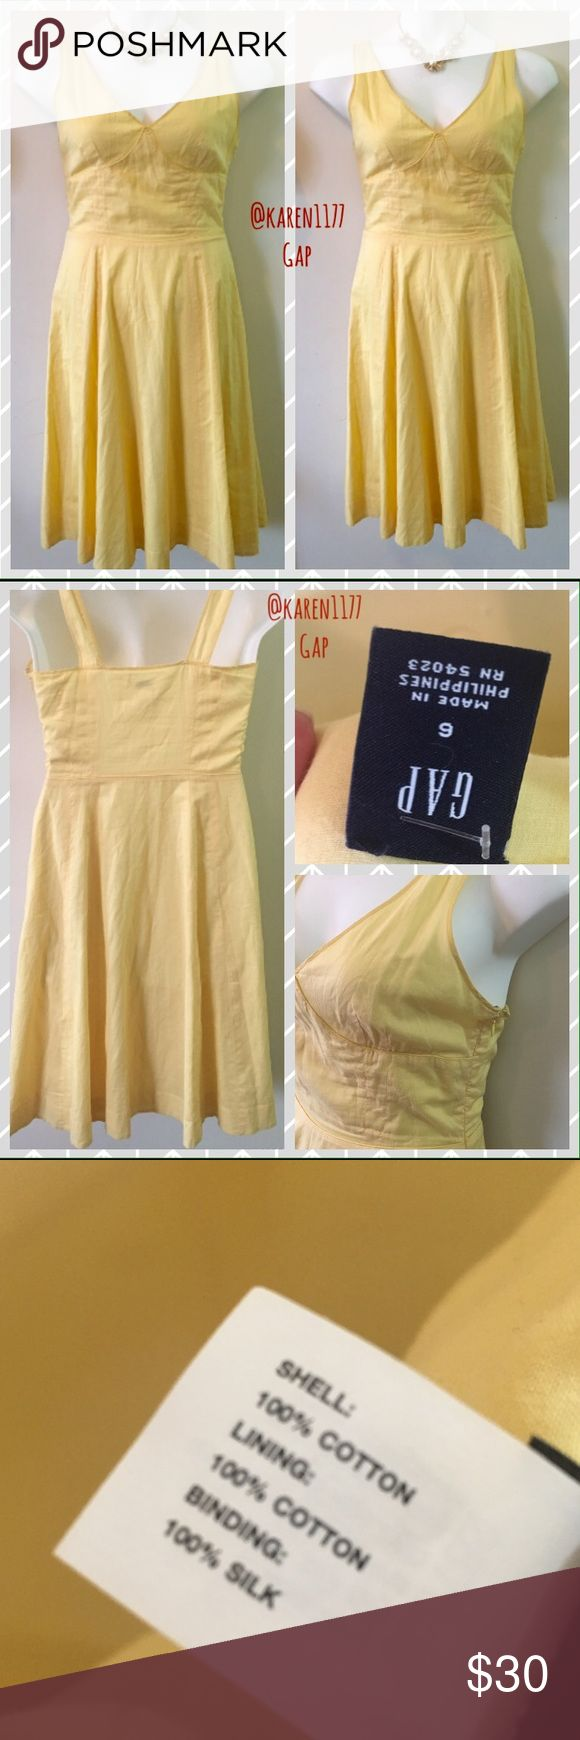 Just In💛 GAP Yellow empire waist Dress Beautiful 100% Cotton and Silk binding material. V neckline, zipper on the side. Fully lined. Stunning A line skirt, gives a very classic look. Great to dress up.✨Necklace not included, but available in another listing✨ GAP Dresses Midi